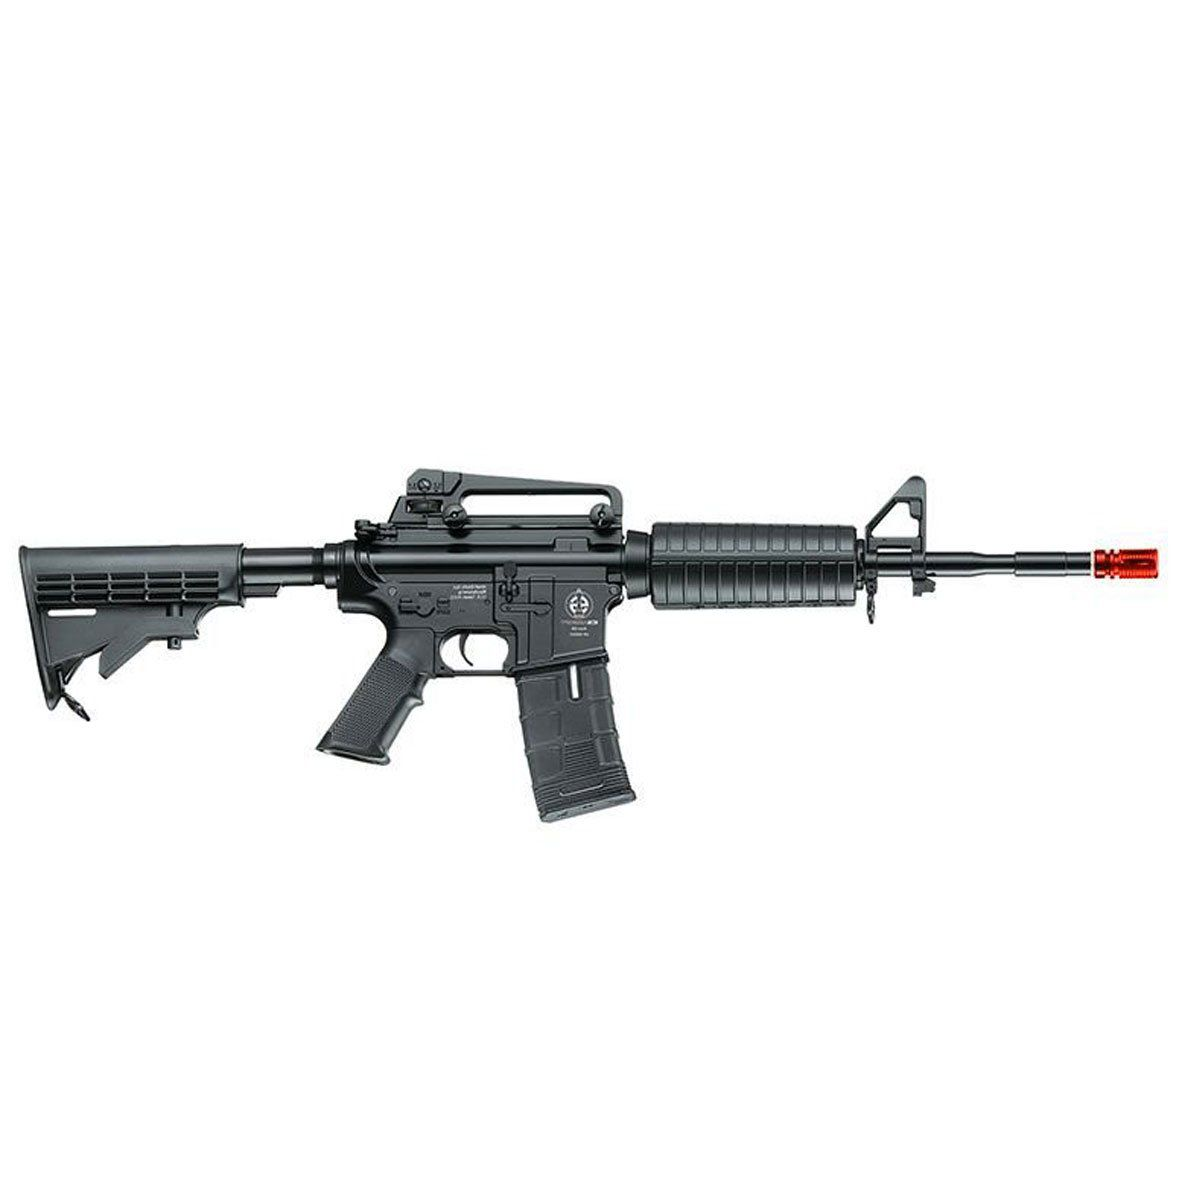 Rifle de Airsoft ICS M4A1 ICS-41 Elétrico 6mm